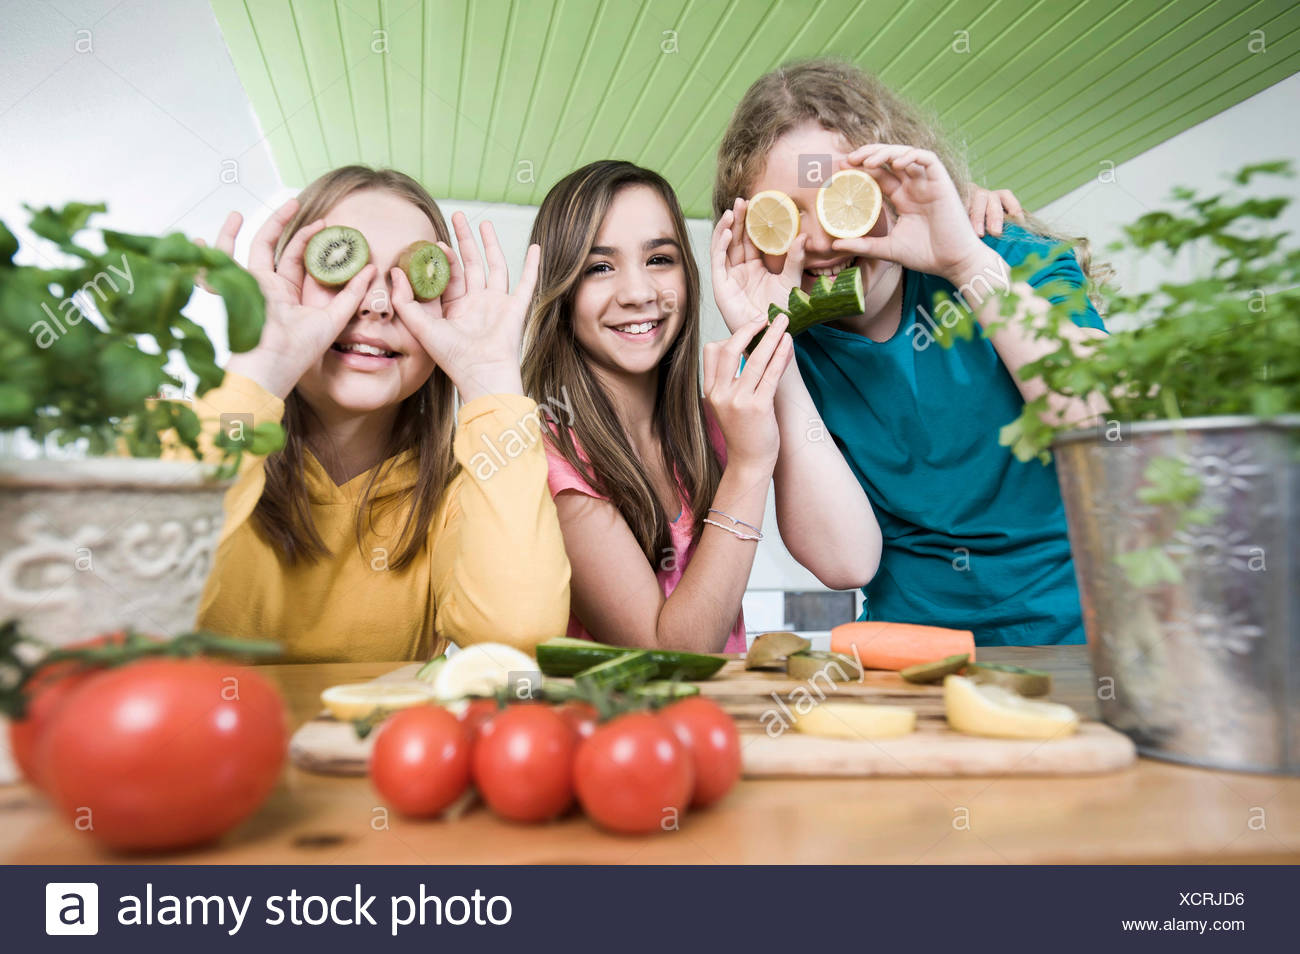 Girls in kitchen making faces with fruit - Stock Image